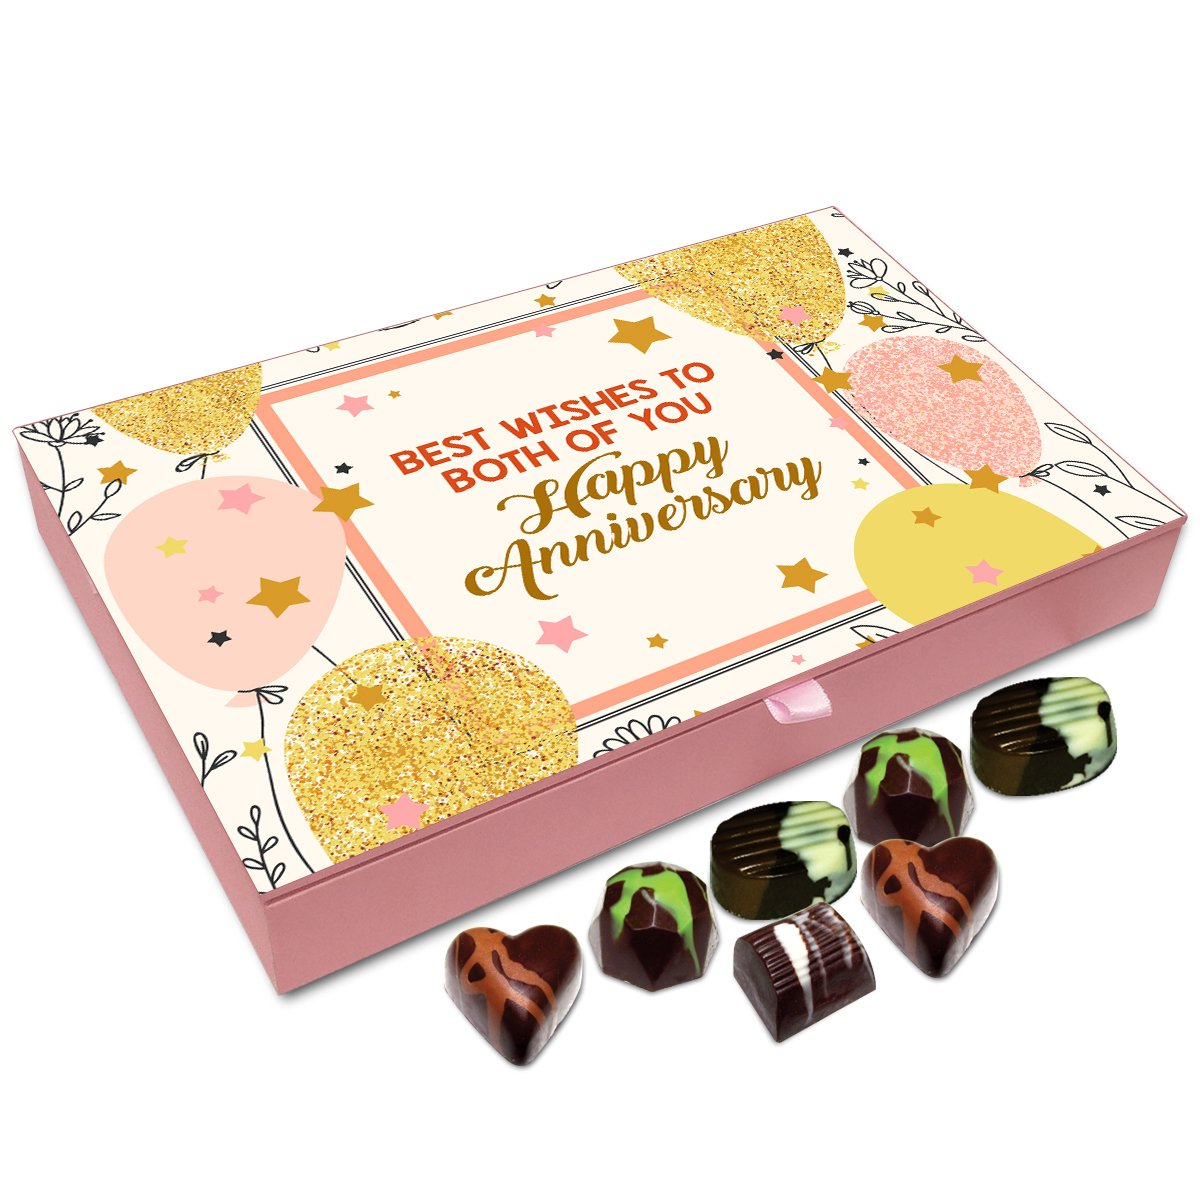 Chocholik Anniversary Gift Box – On This Anniversary Best Wishes for The Lifetime Chocolate Box – 12pc